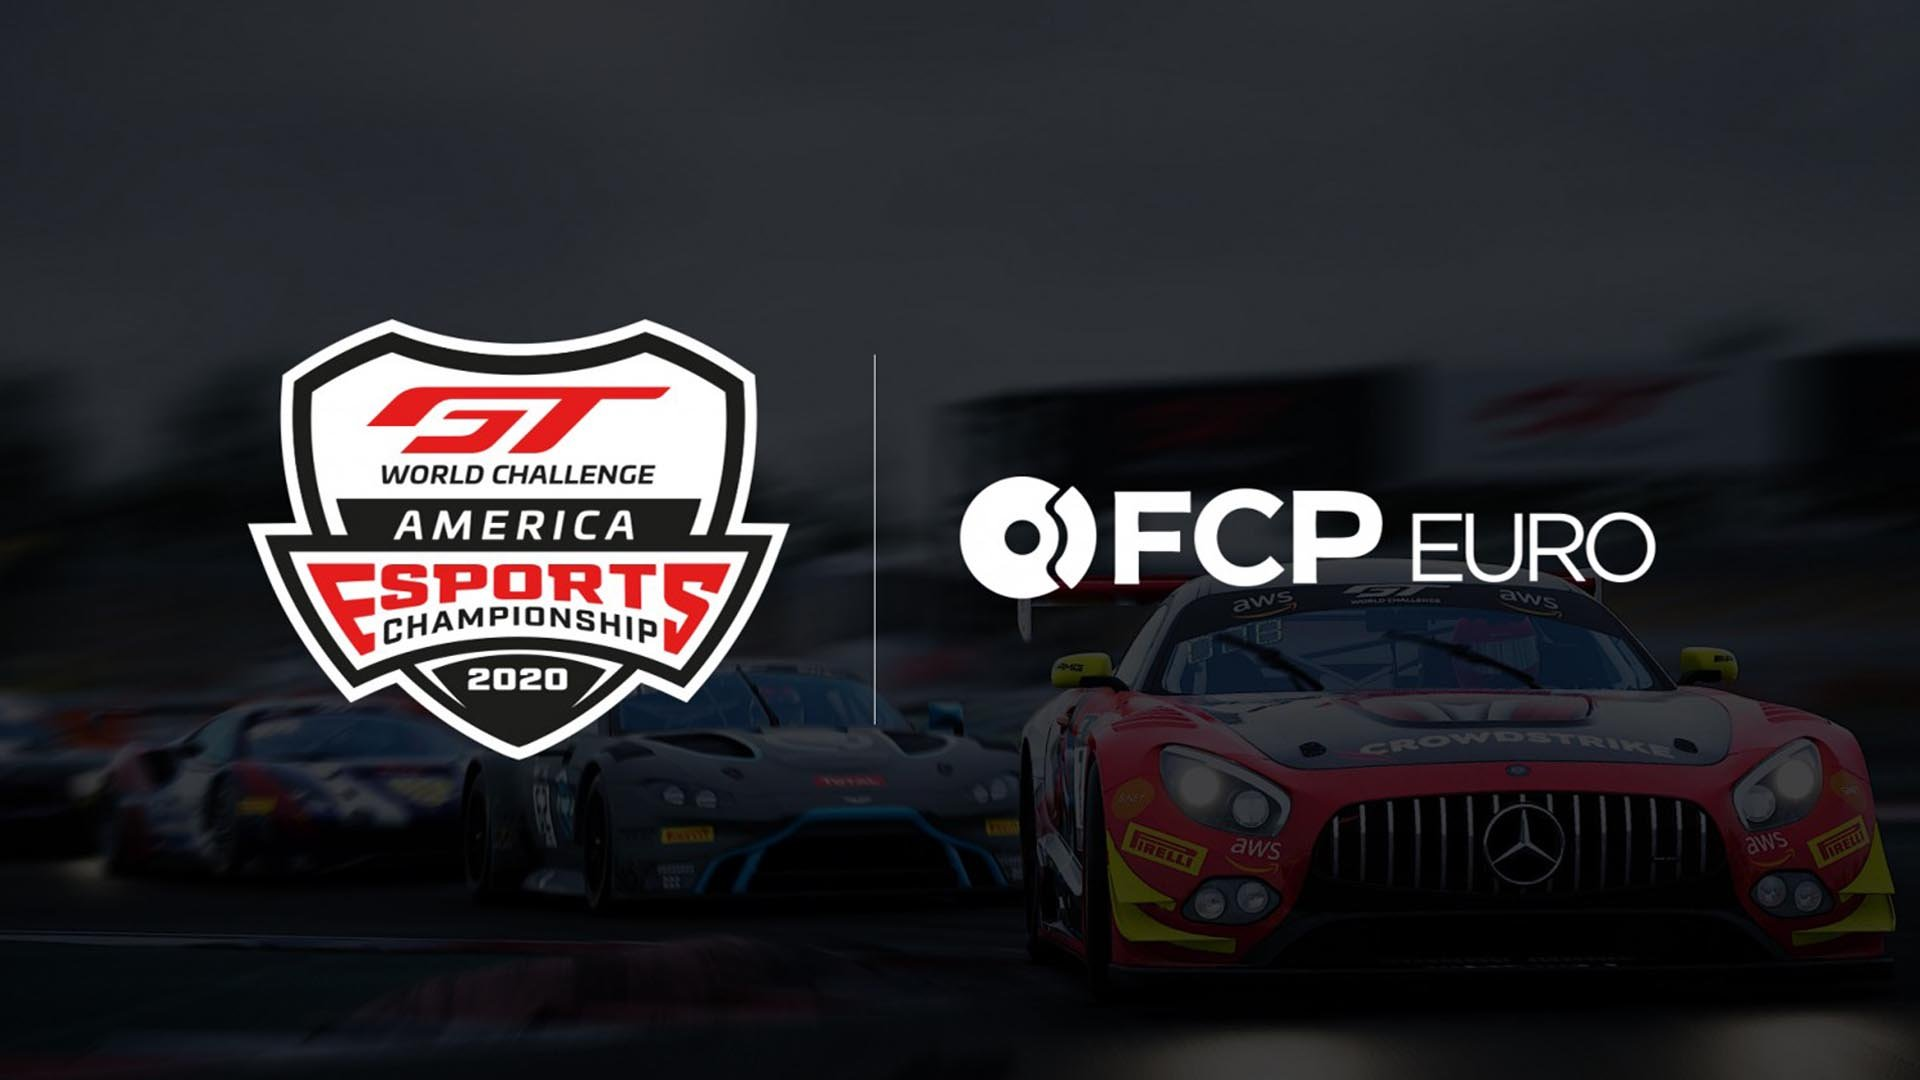 The FCP Euro GT World Challenge Esports Championship & Sim Rig Giveaway